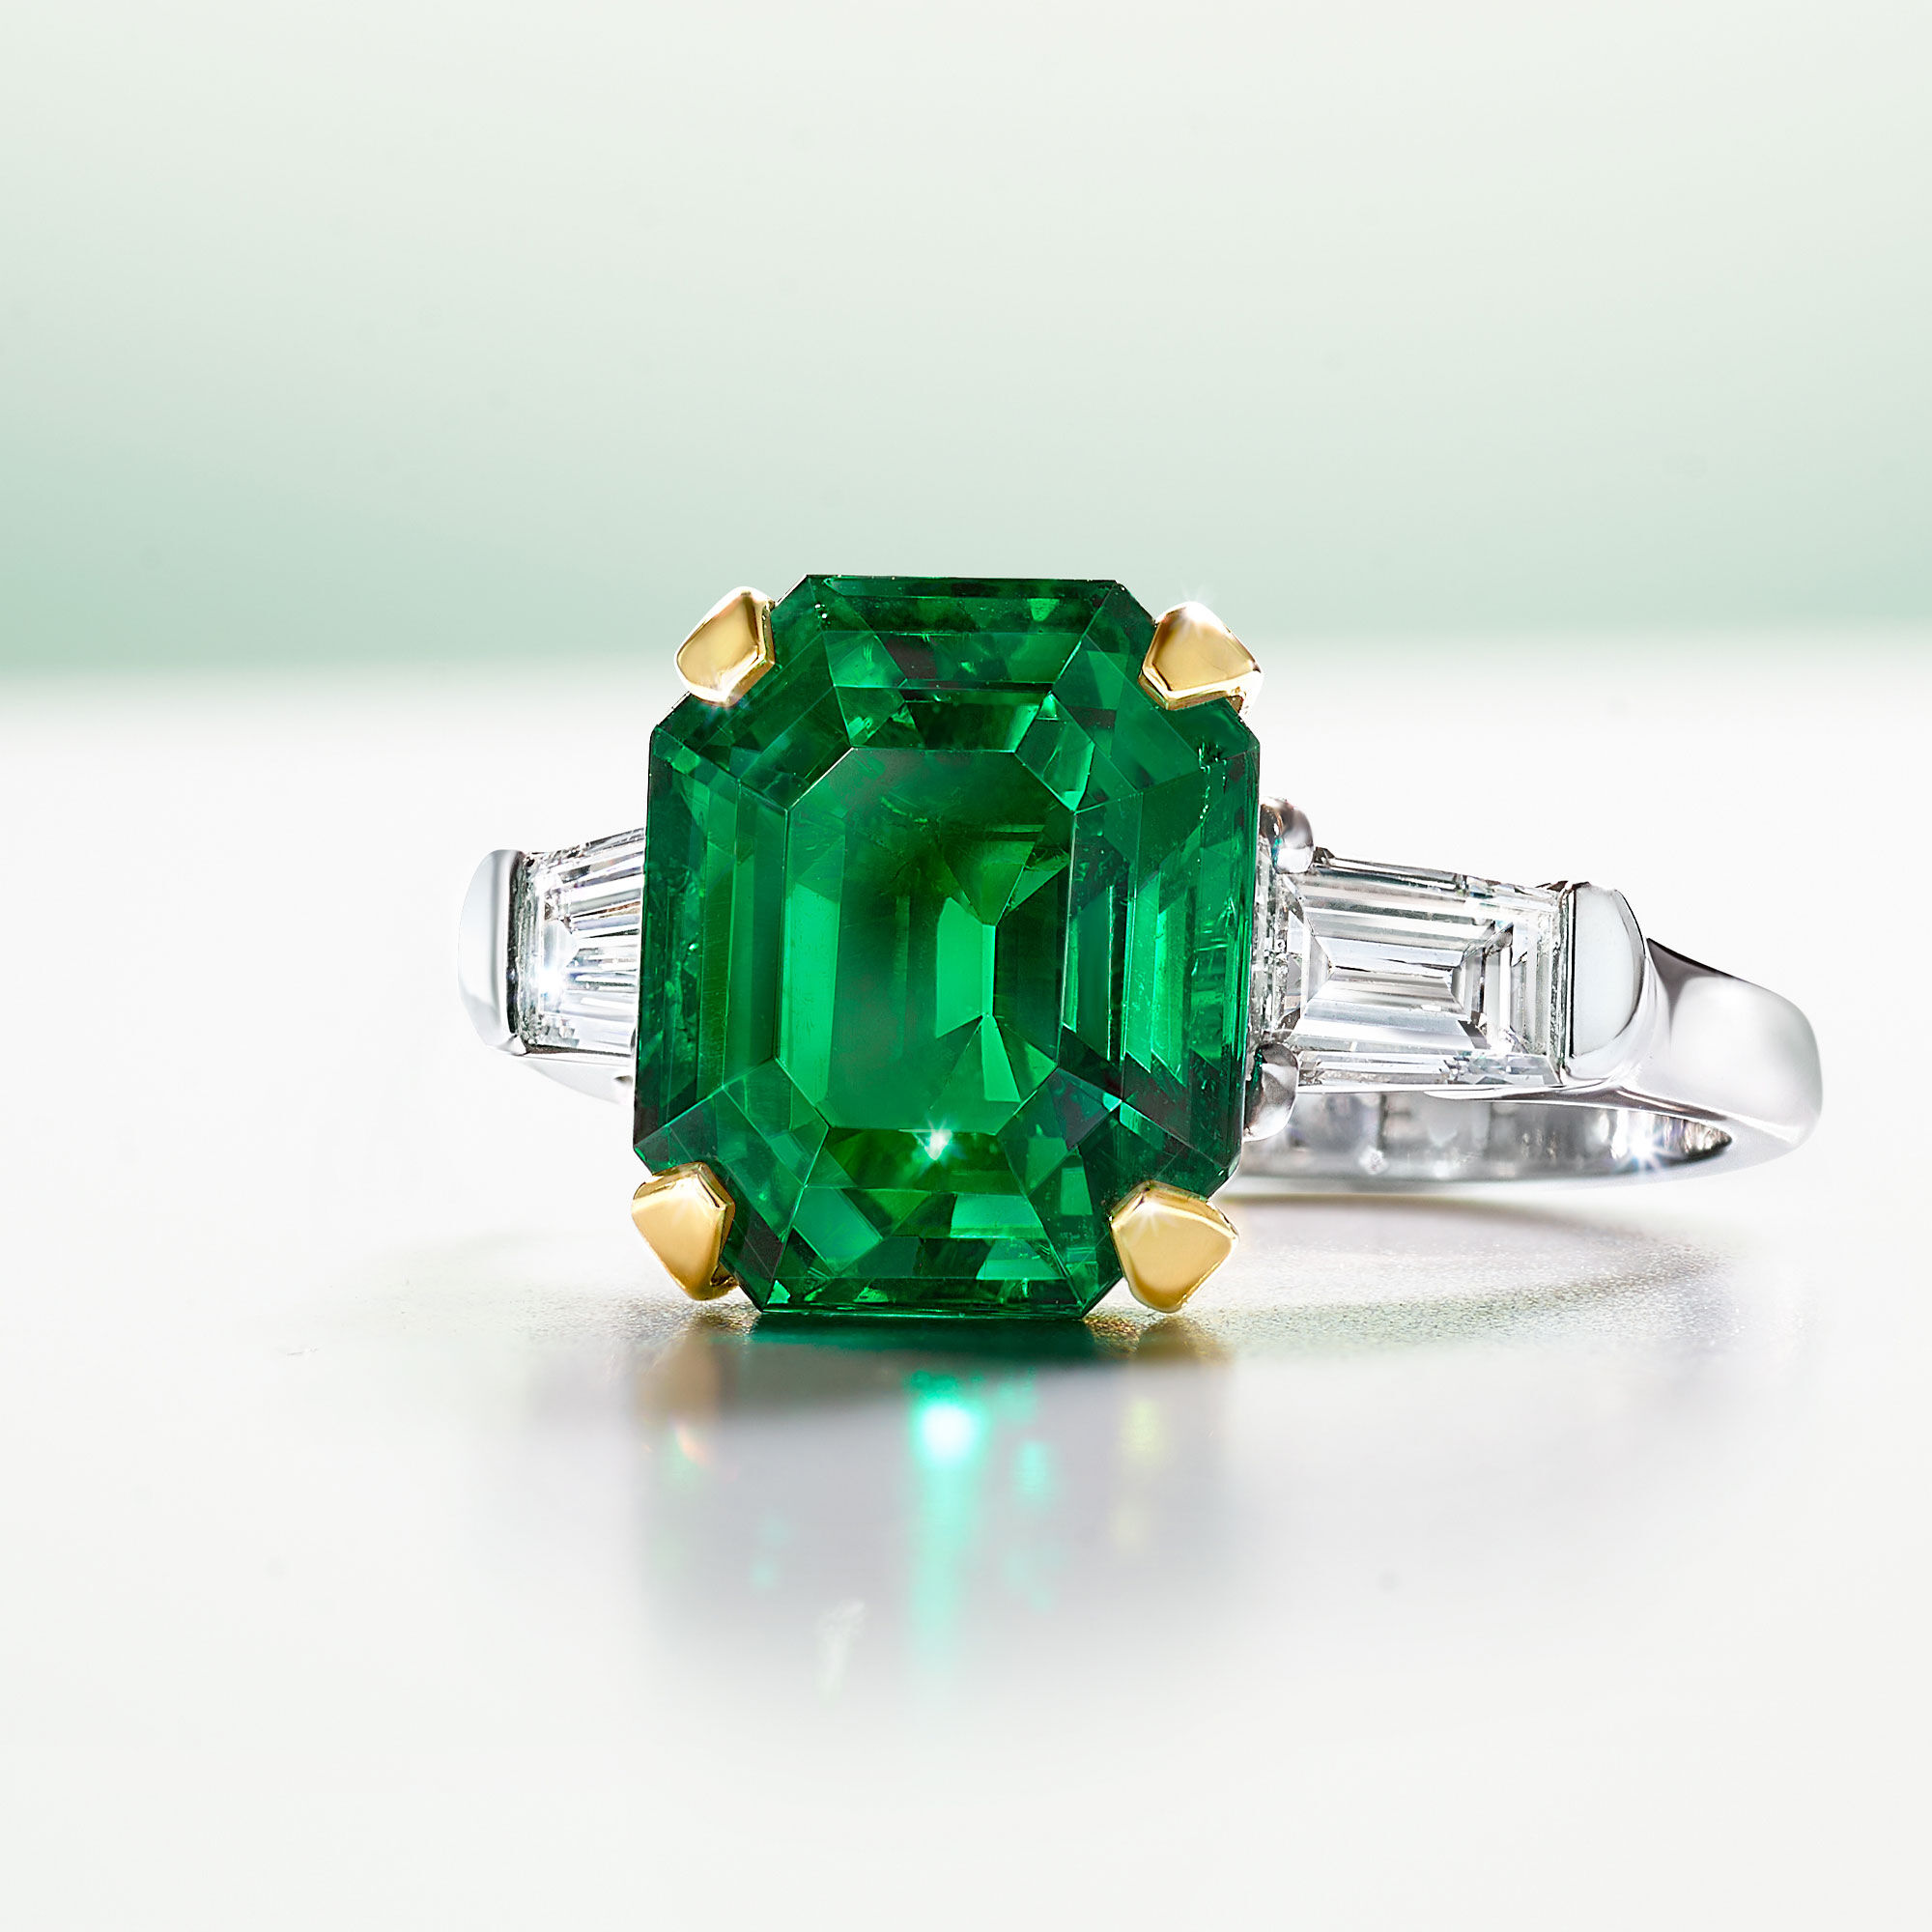 An emerald cut emerald ring with baguette cut side diamonds by Graff